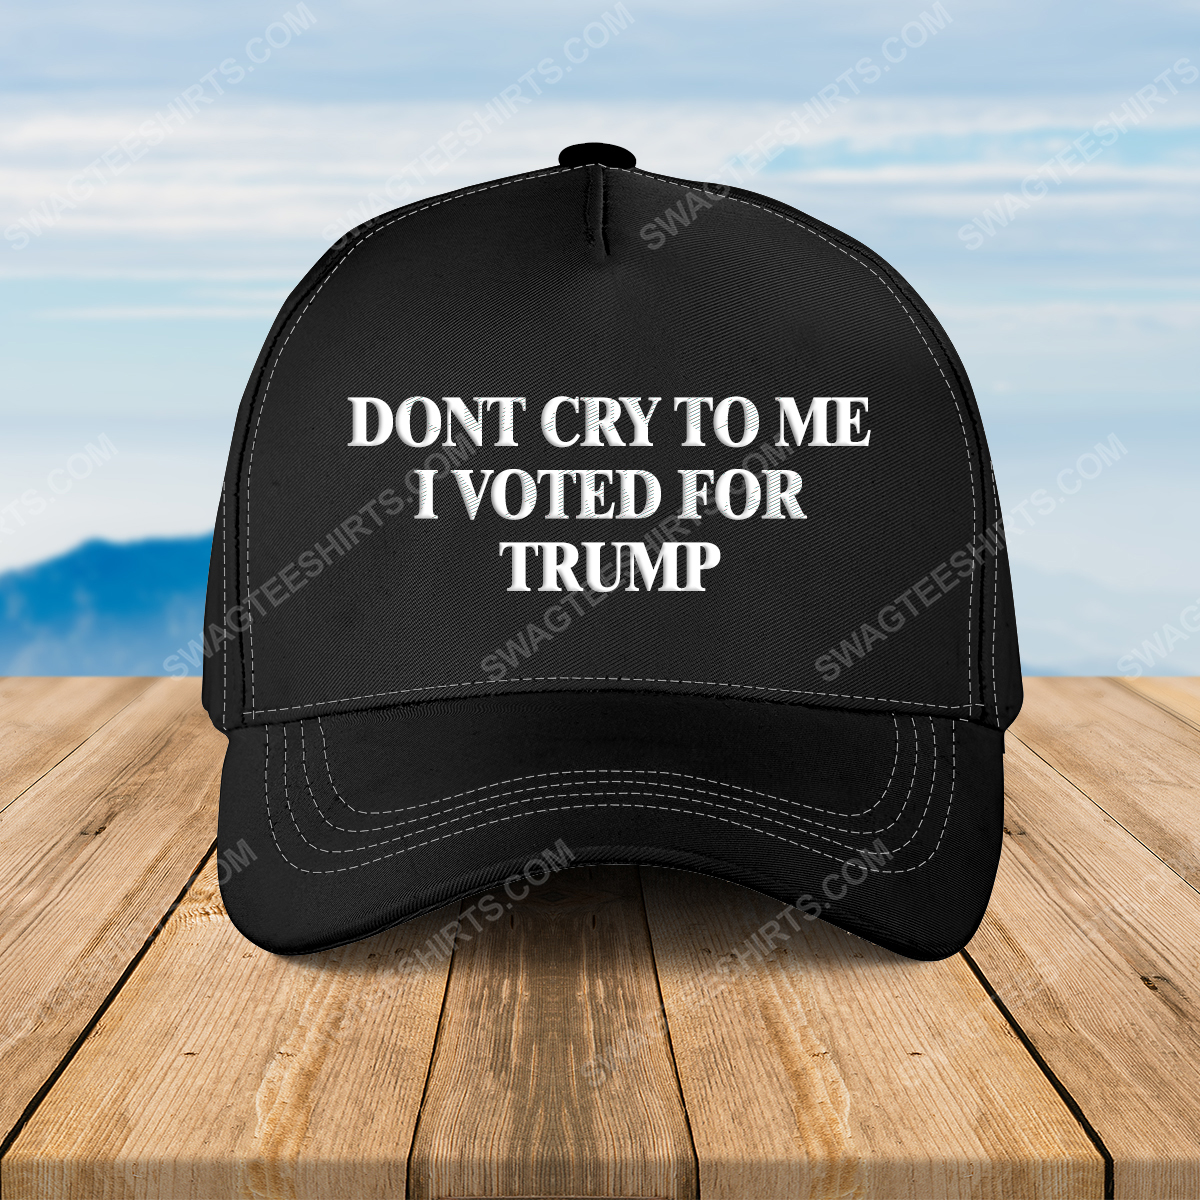 Camo don't cry to me i voted for trump full print classic hat 1 - Copy